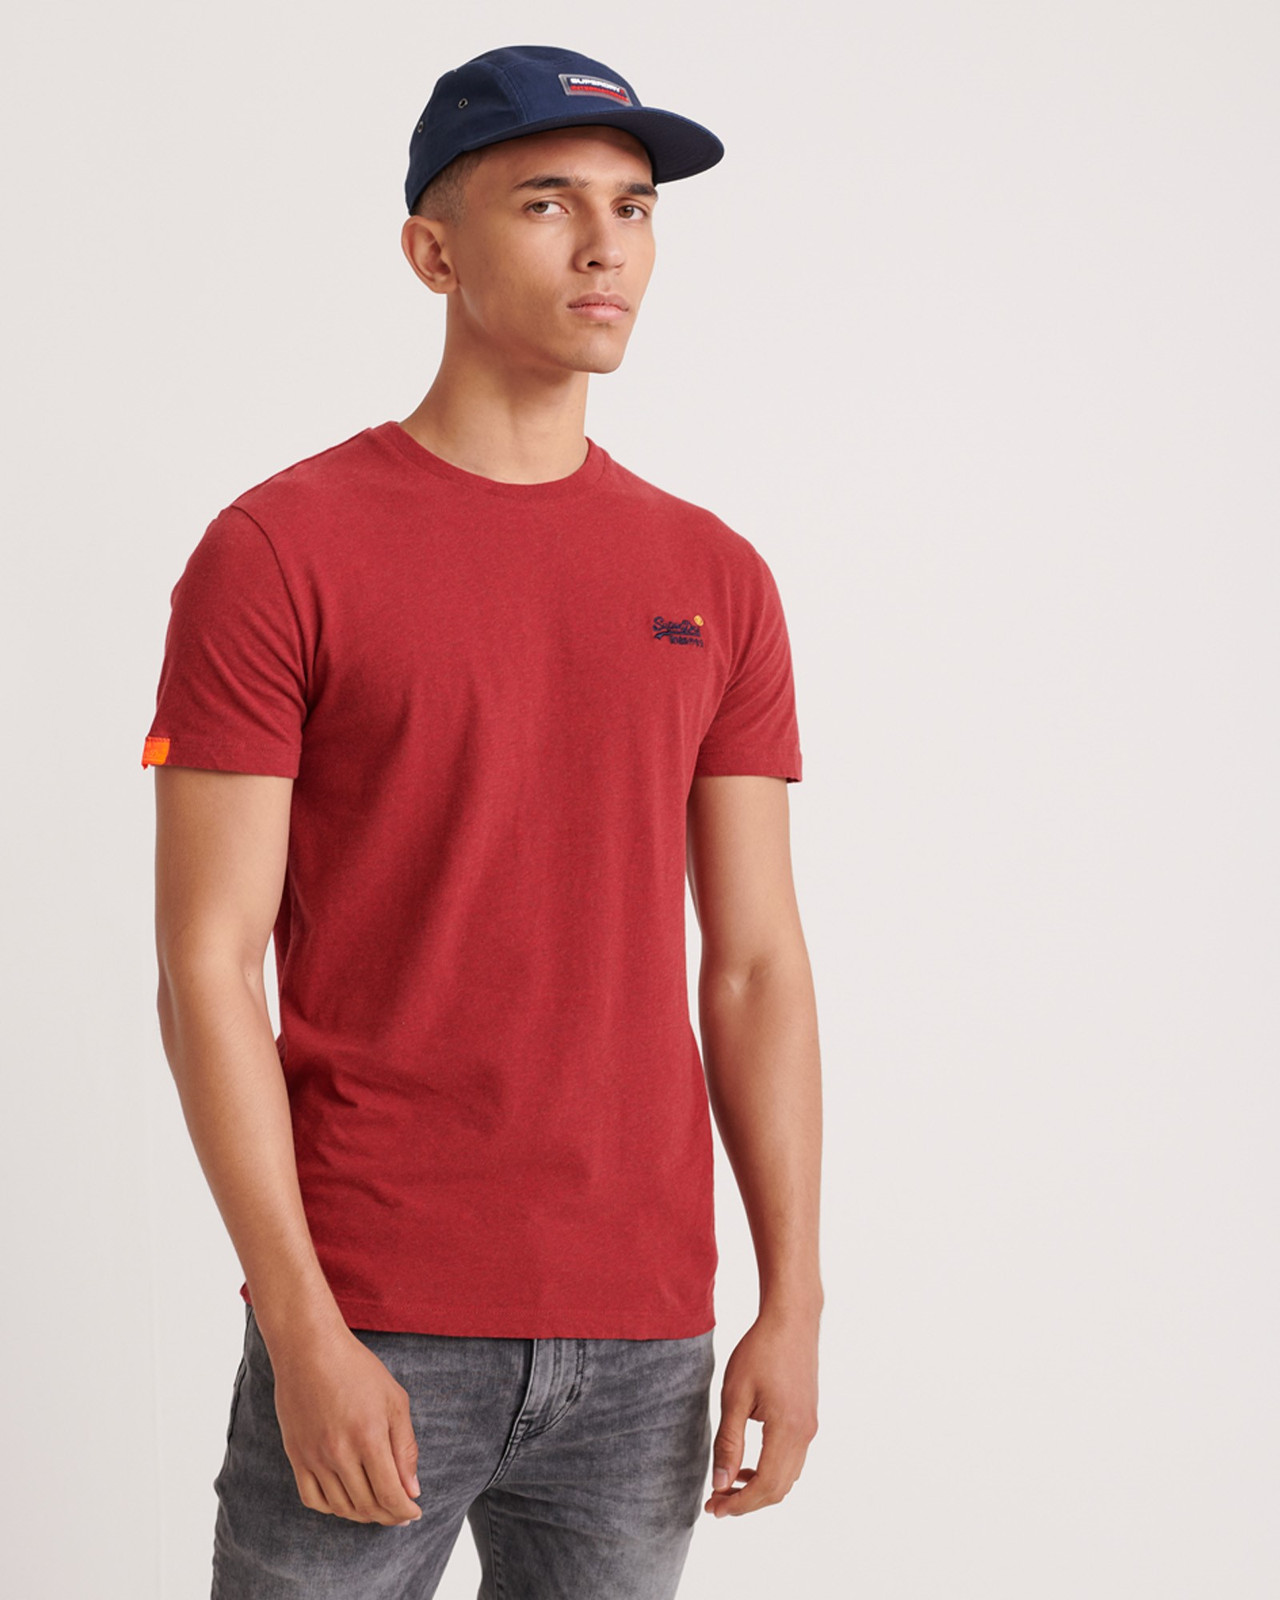 Superdry Mens Orange Label Vintage Embroidery Tee Red Plain T Shirts 0